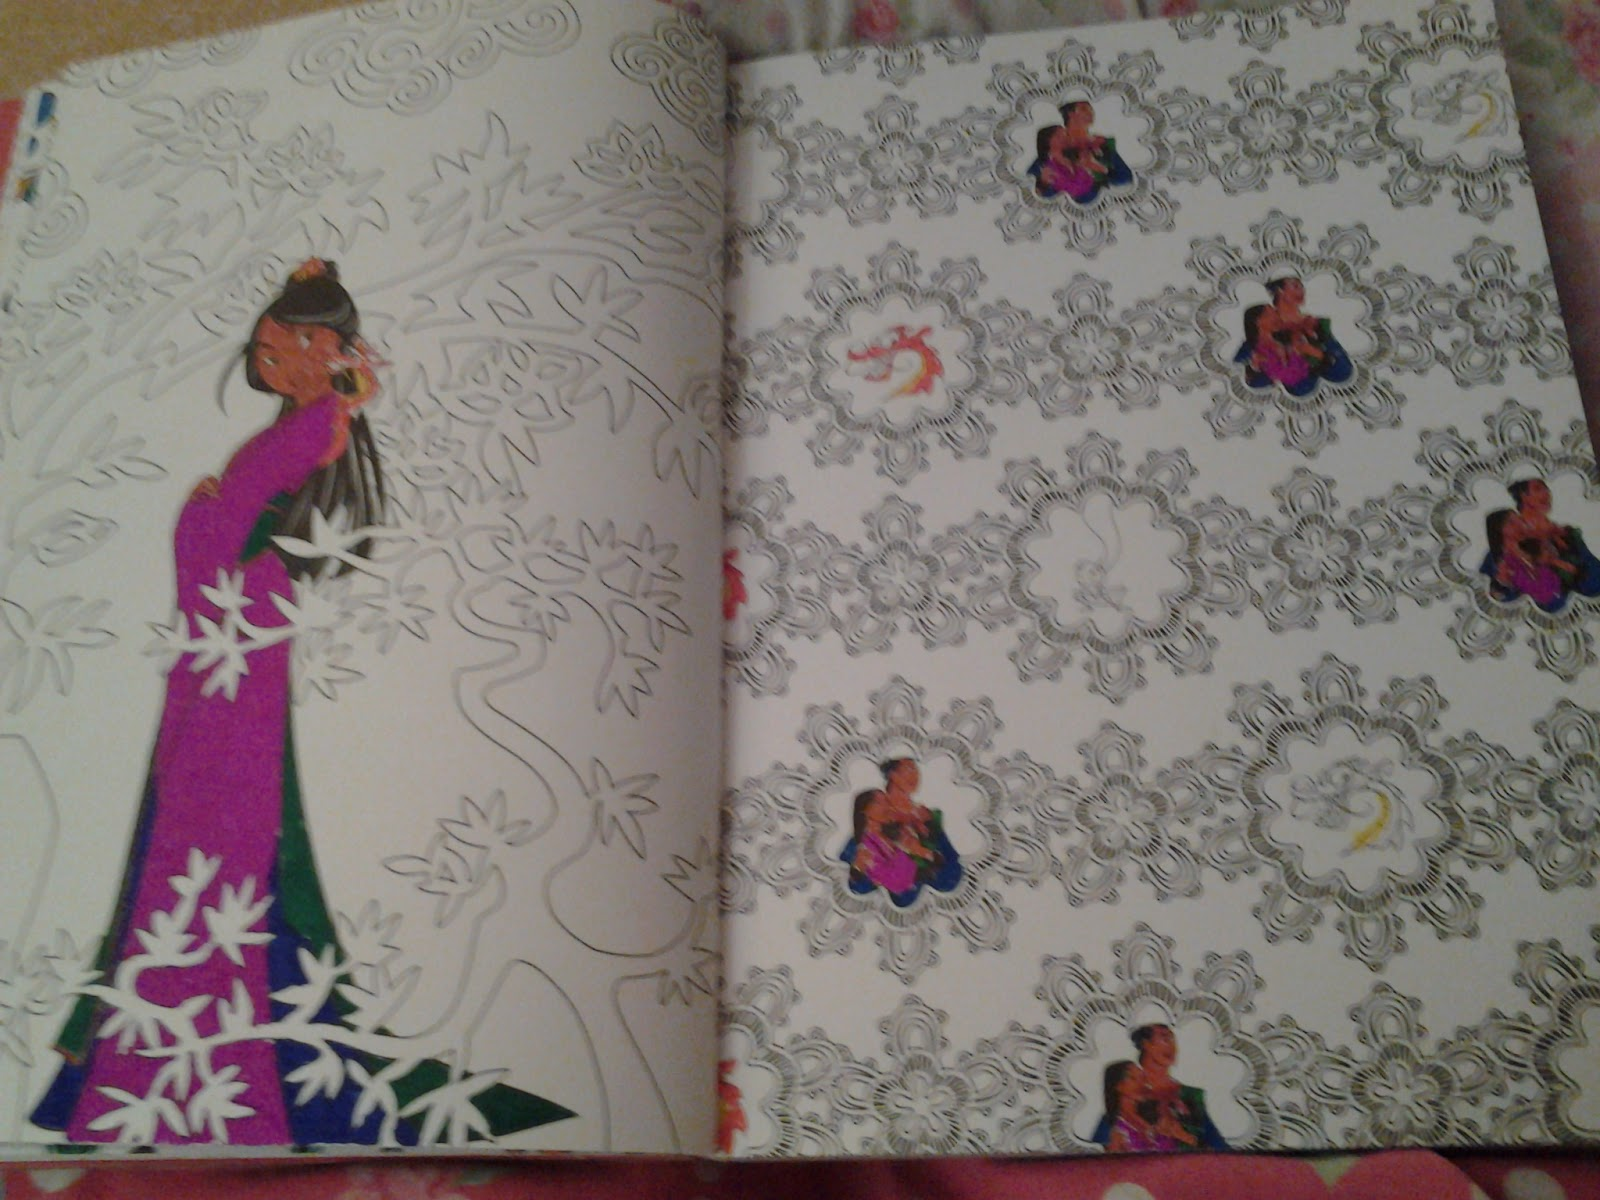 Disney princess art therapy colouring book - Nayu S Reading Corner What Are You Reading 297 Disney Art Therapy Coloring